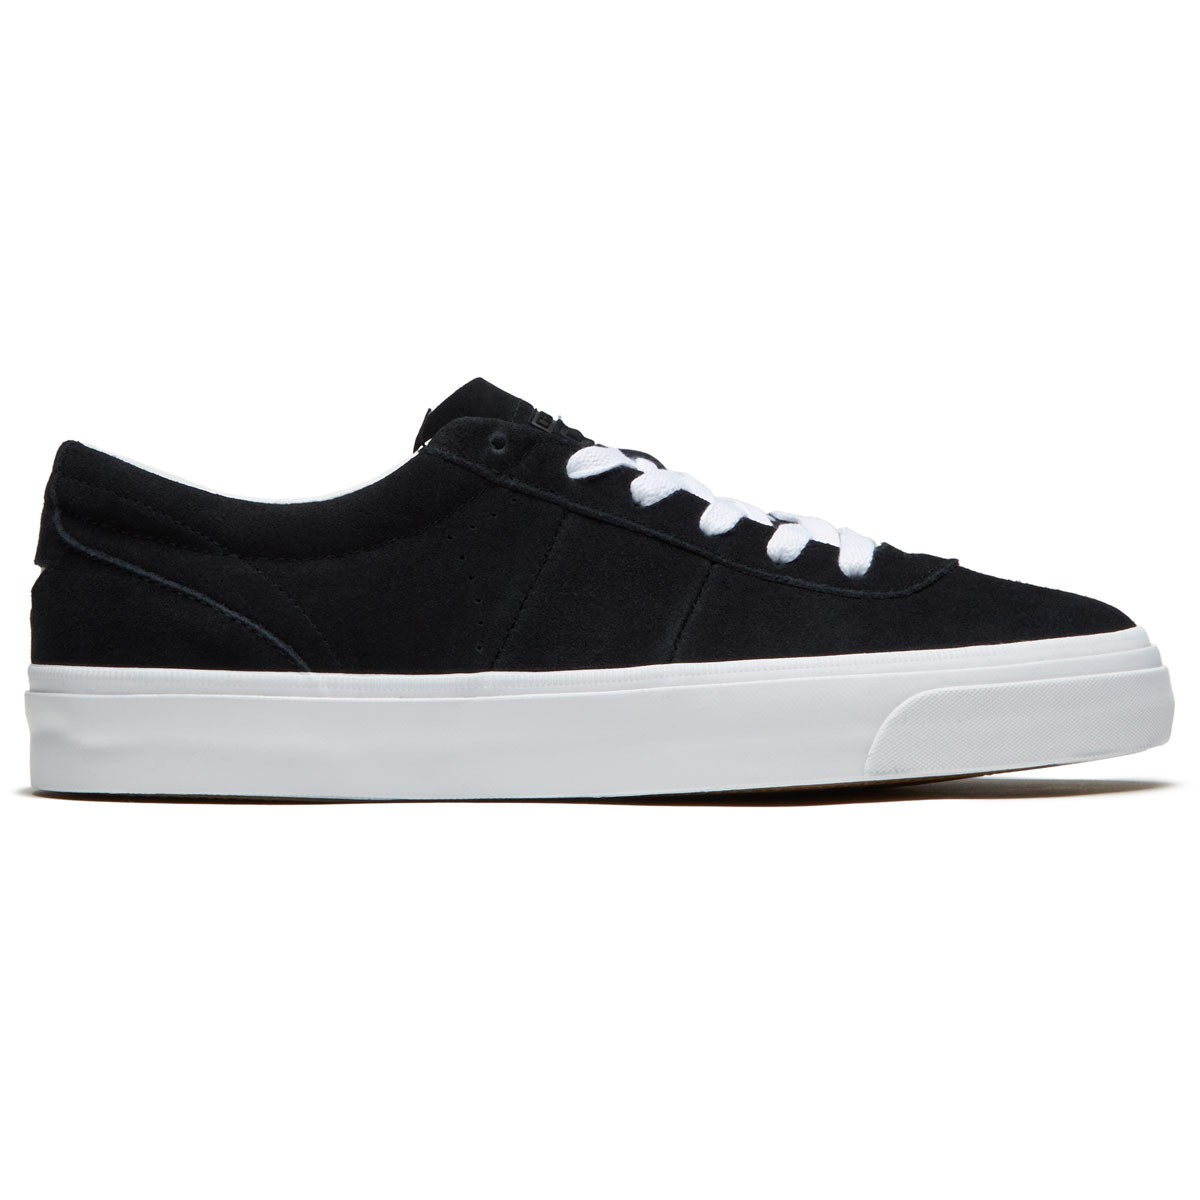 Converse - One Star CC Pro Leather Ox, Black/Black/White - Sneakers